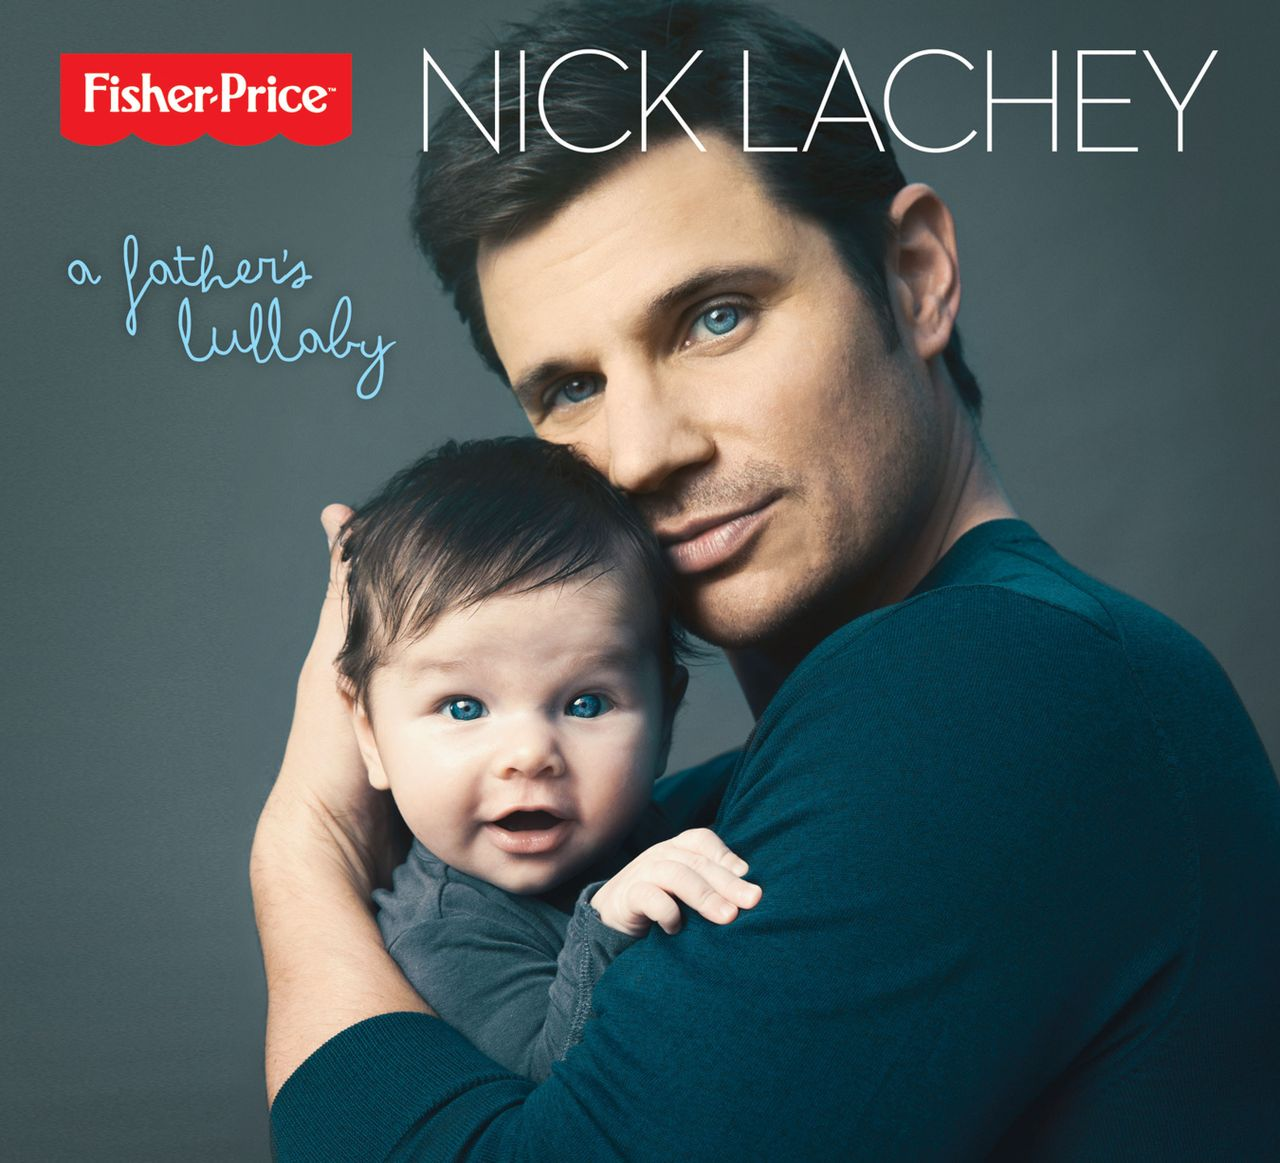 "Multi-Platinum Recording Artist Nick Lachey Releases ""A Father's Lullaby"" Album With Fisher-Price®"